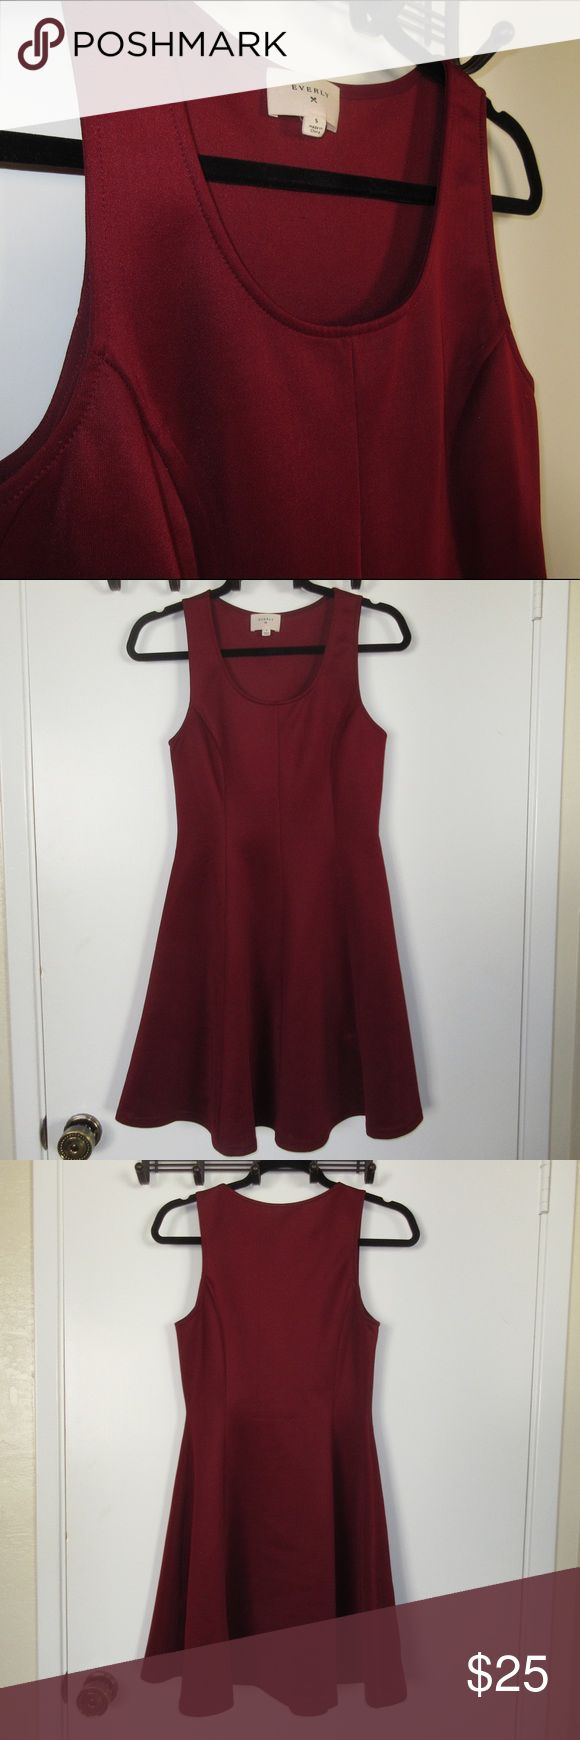 Everly Skater Dress Gorgeous maroon skater dress from Everly. Originally purchased at Nordstrom and worn only once. This shiny maroon dress would be perfect for the holiday season!! Everly Dresses